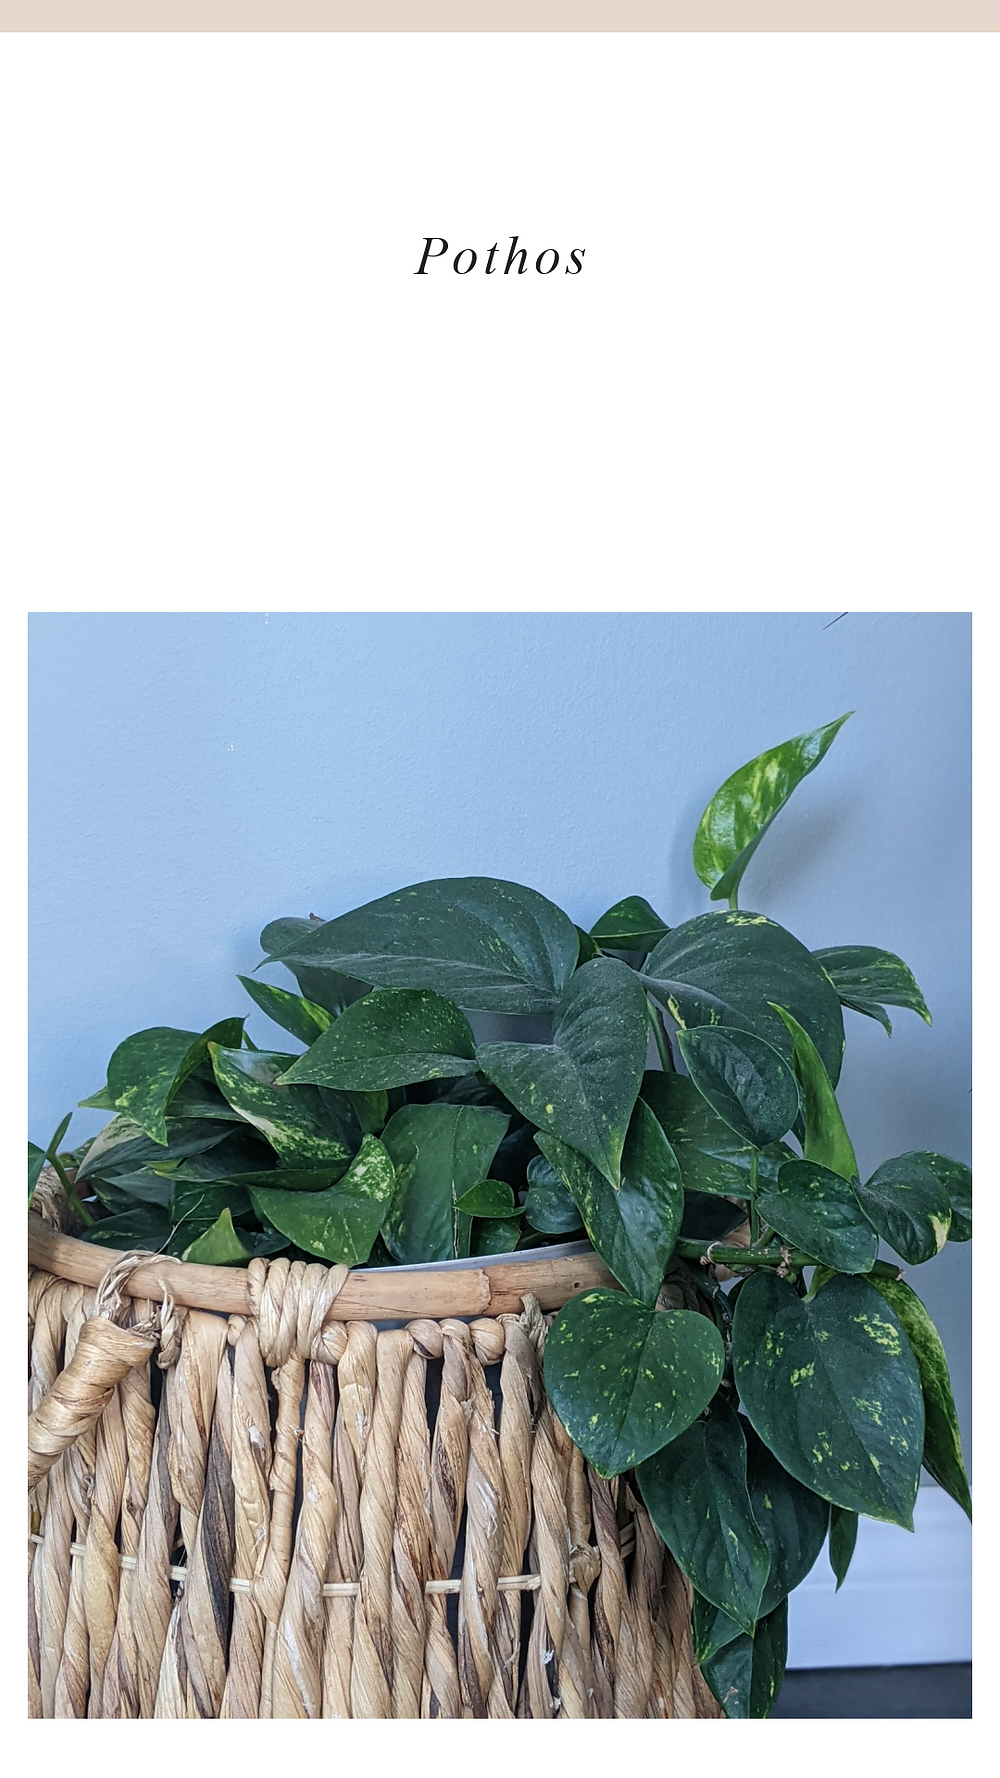 Growing Healthy Pothos plant that has been propagated.